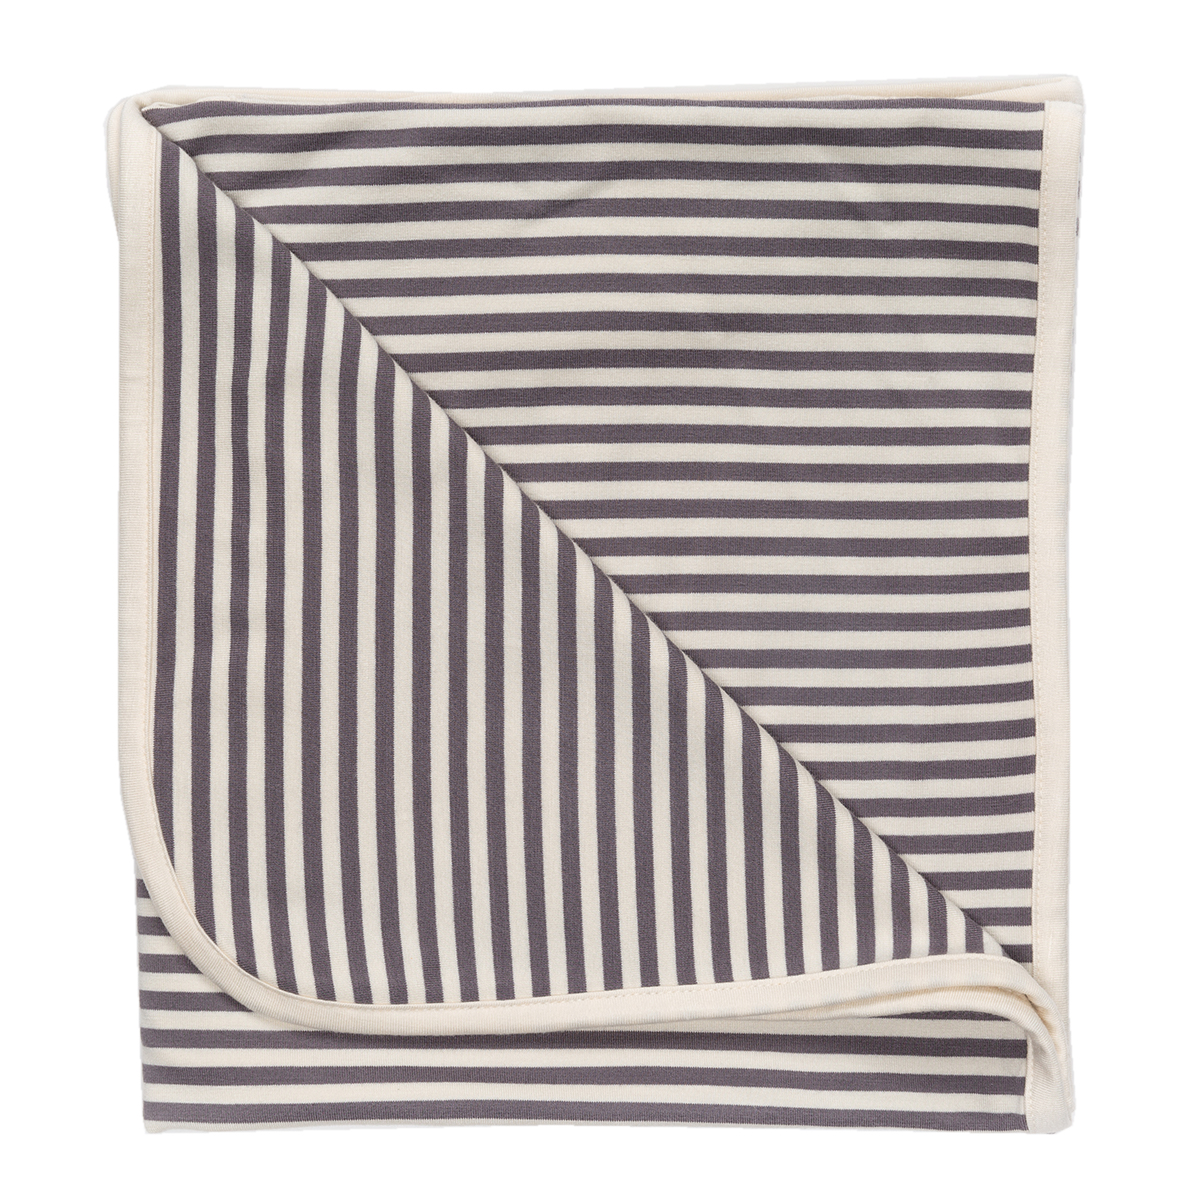 HART + LAND Swaddle Blanket - Stripe